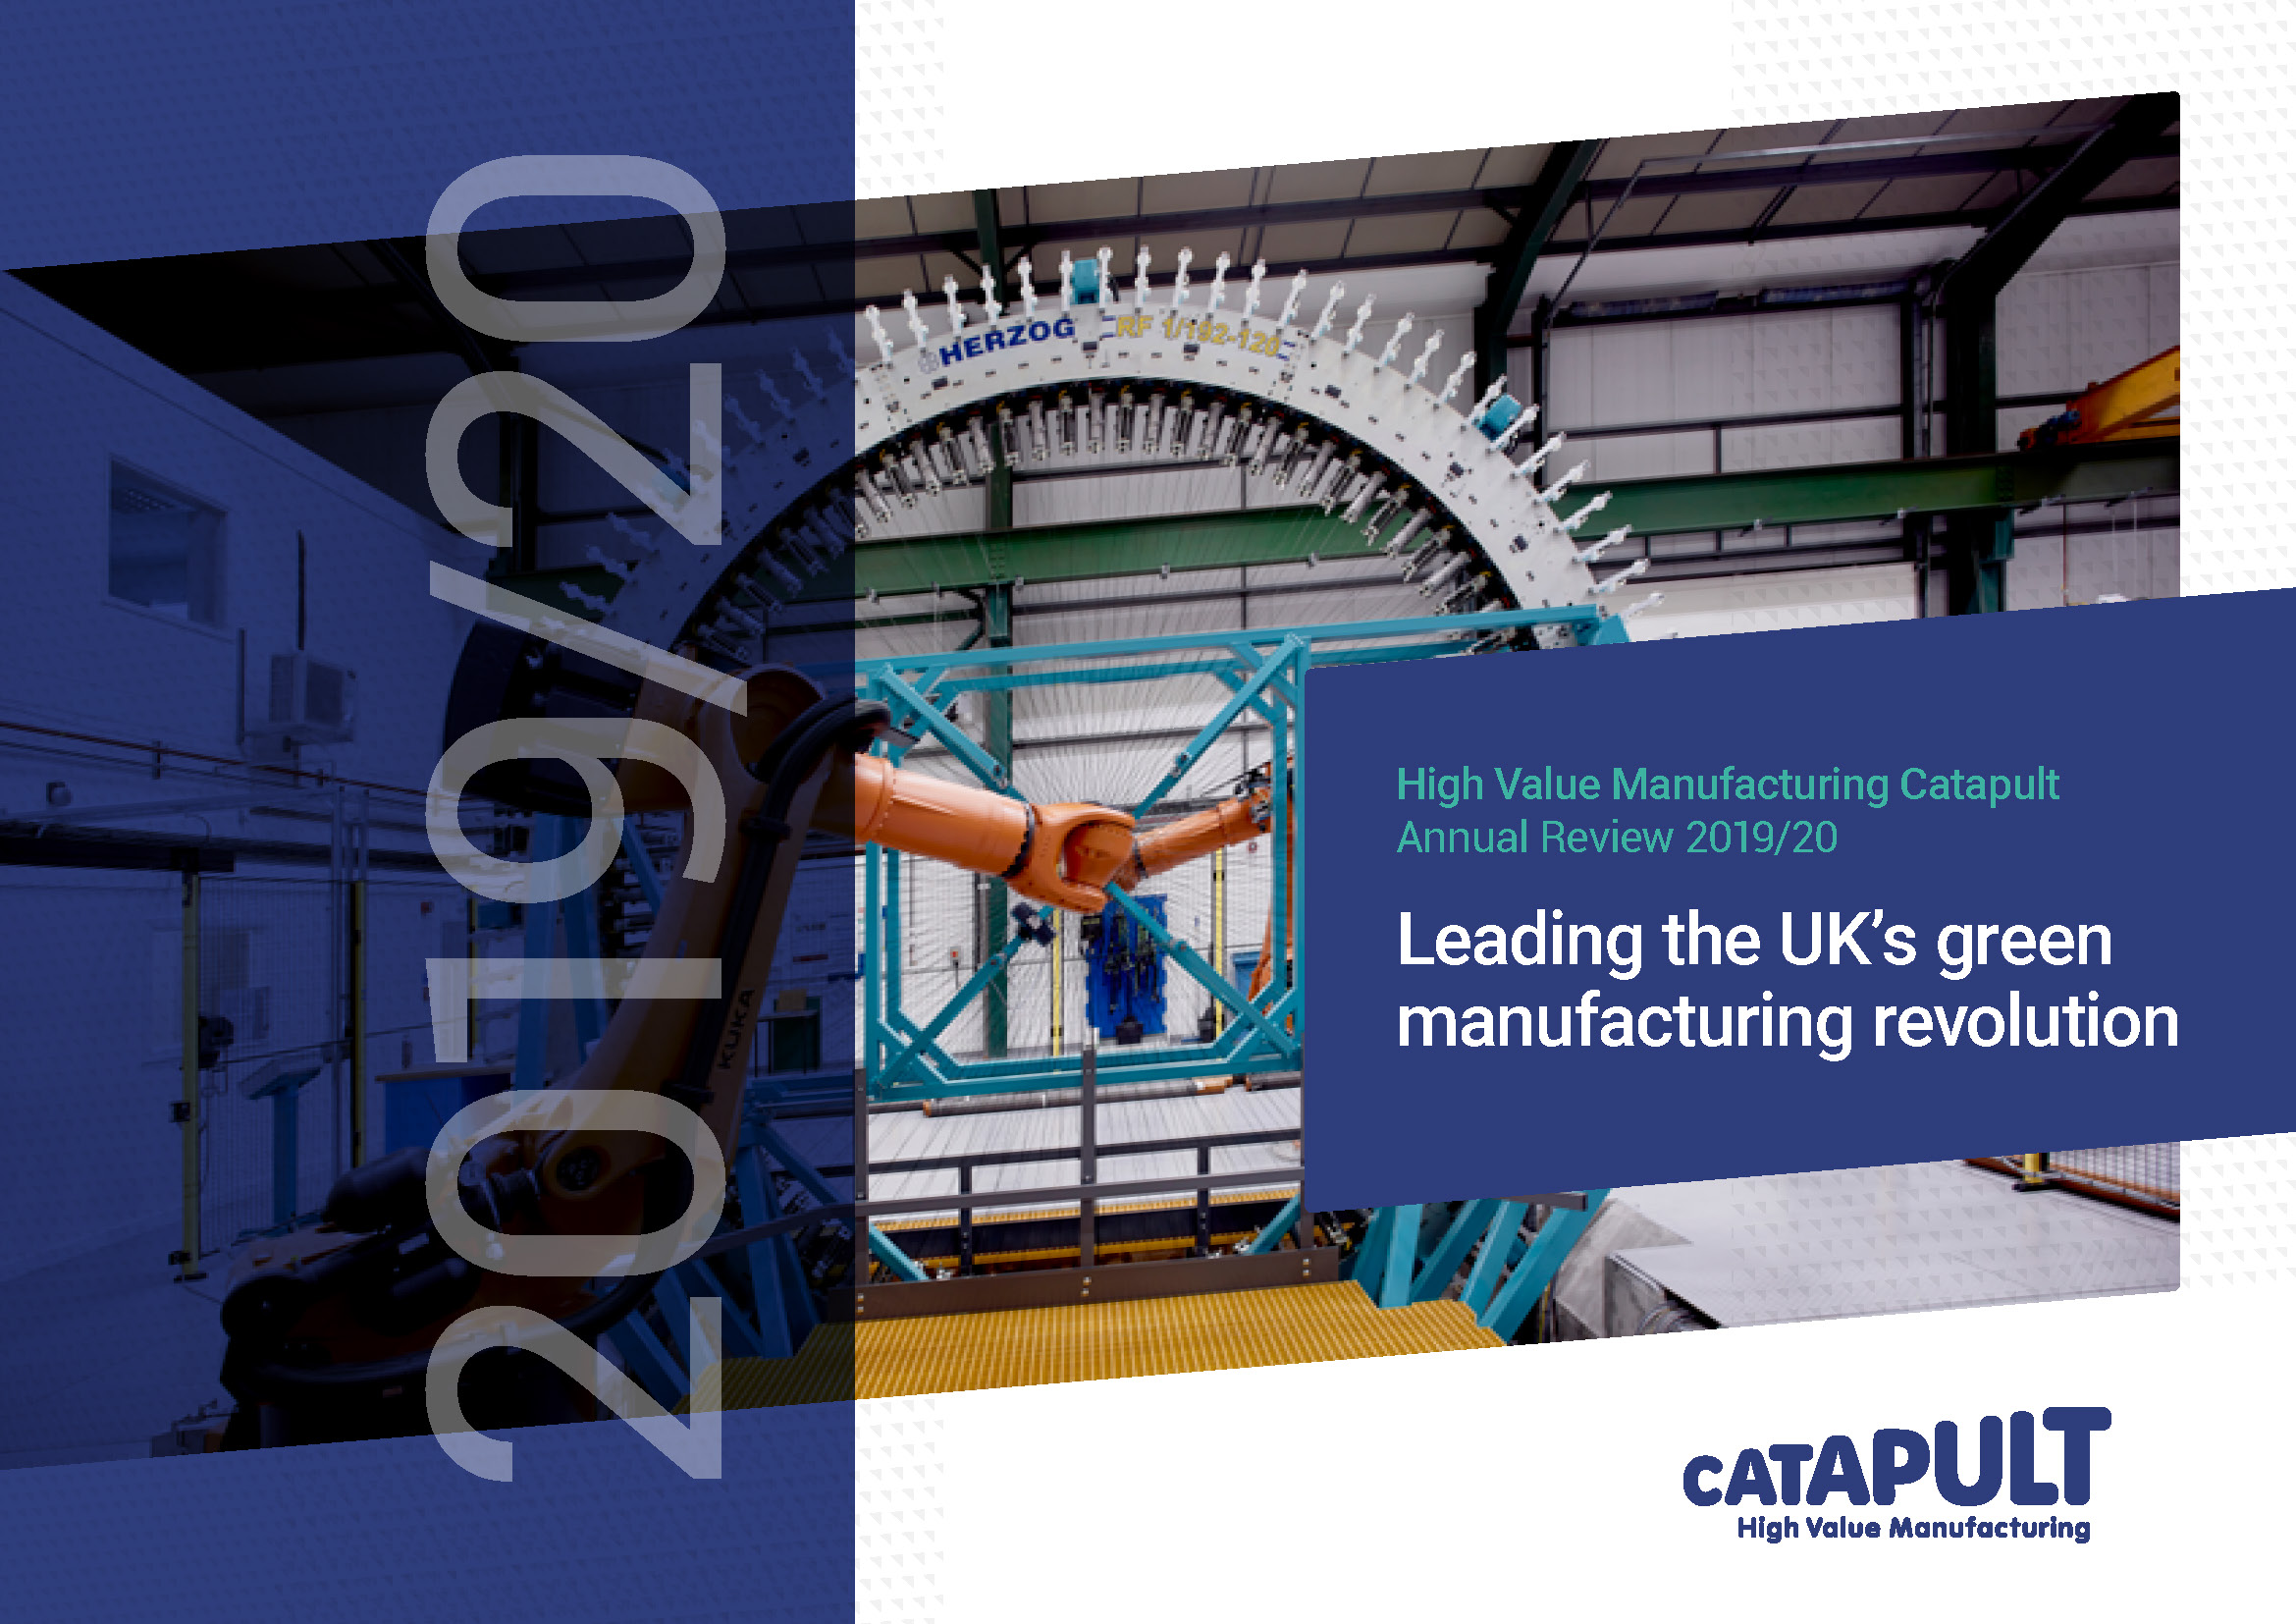 HVM Catapult 2019-20 Annual Review